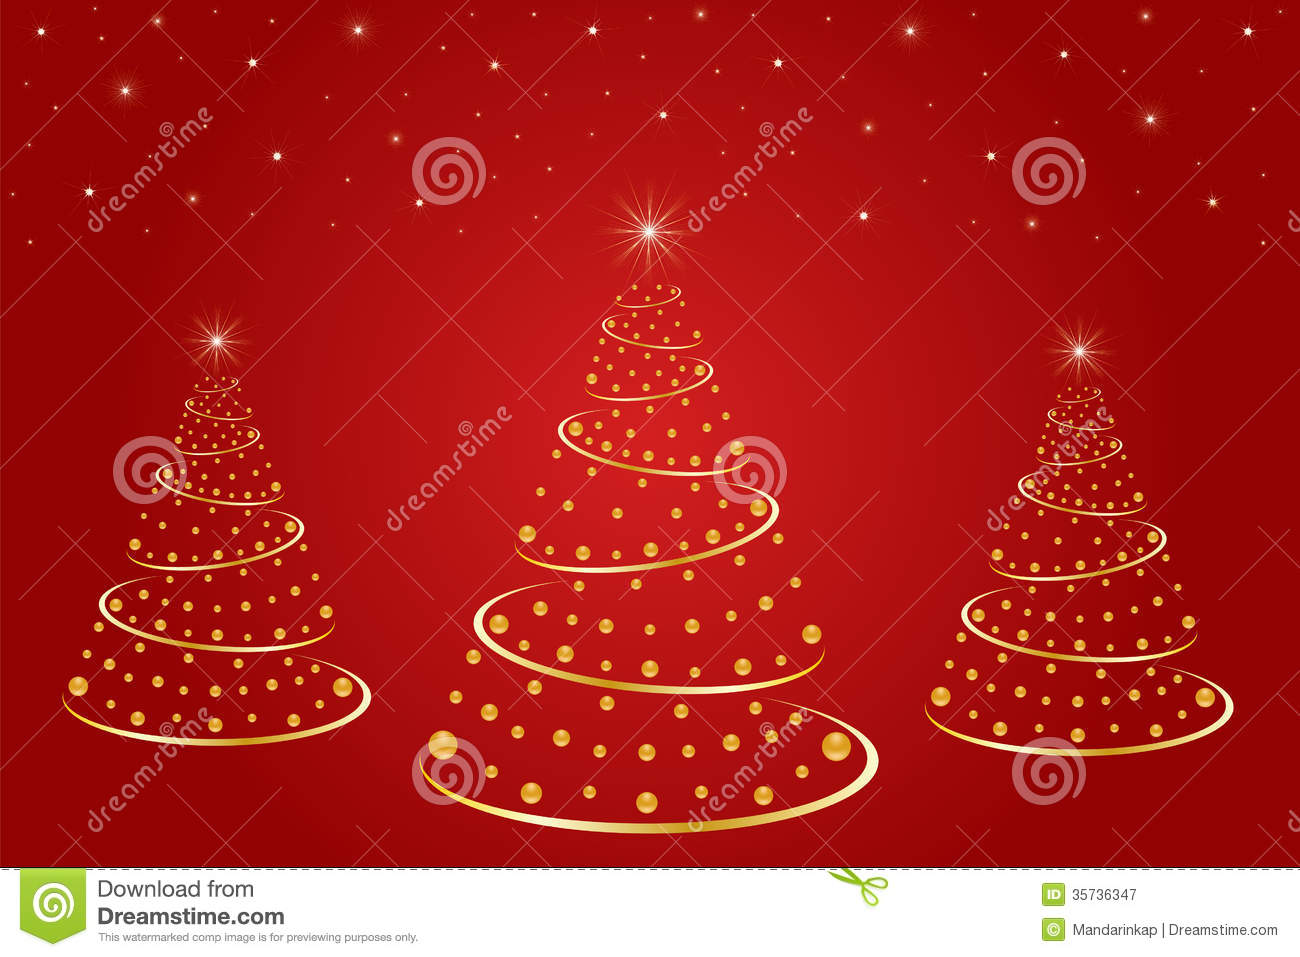 Free Illustration Background Christmas Red Gold: Christmas Tree Stock Vector. Illustration Of Holiday